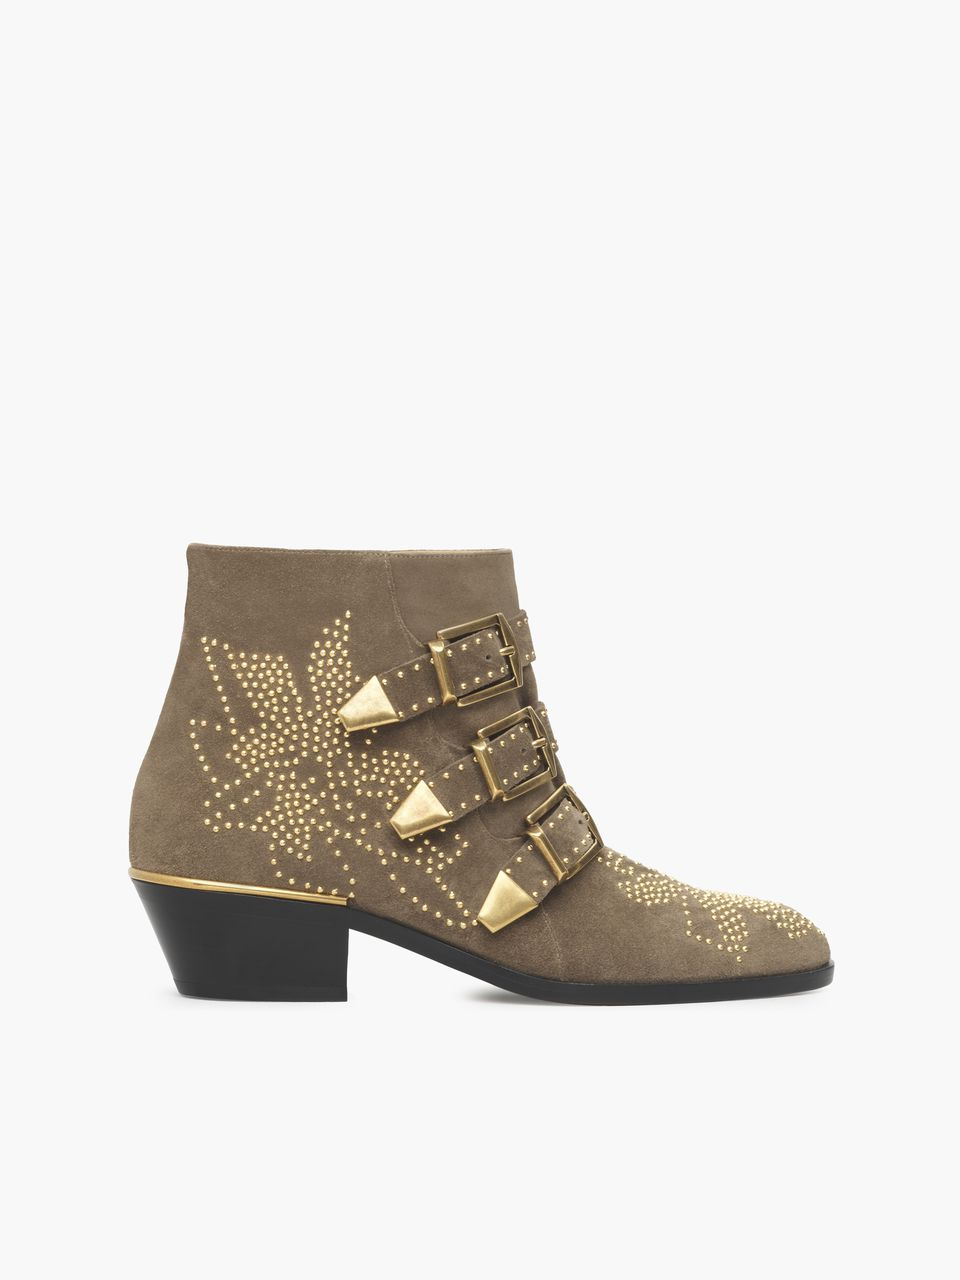 Chloe Susanna 3-Buckle Boot   Grey